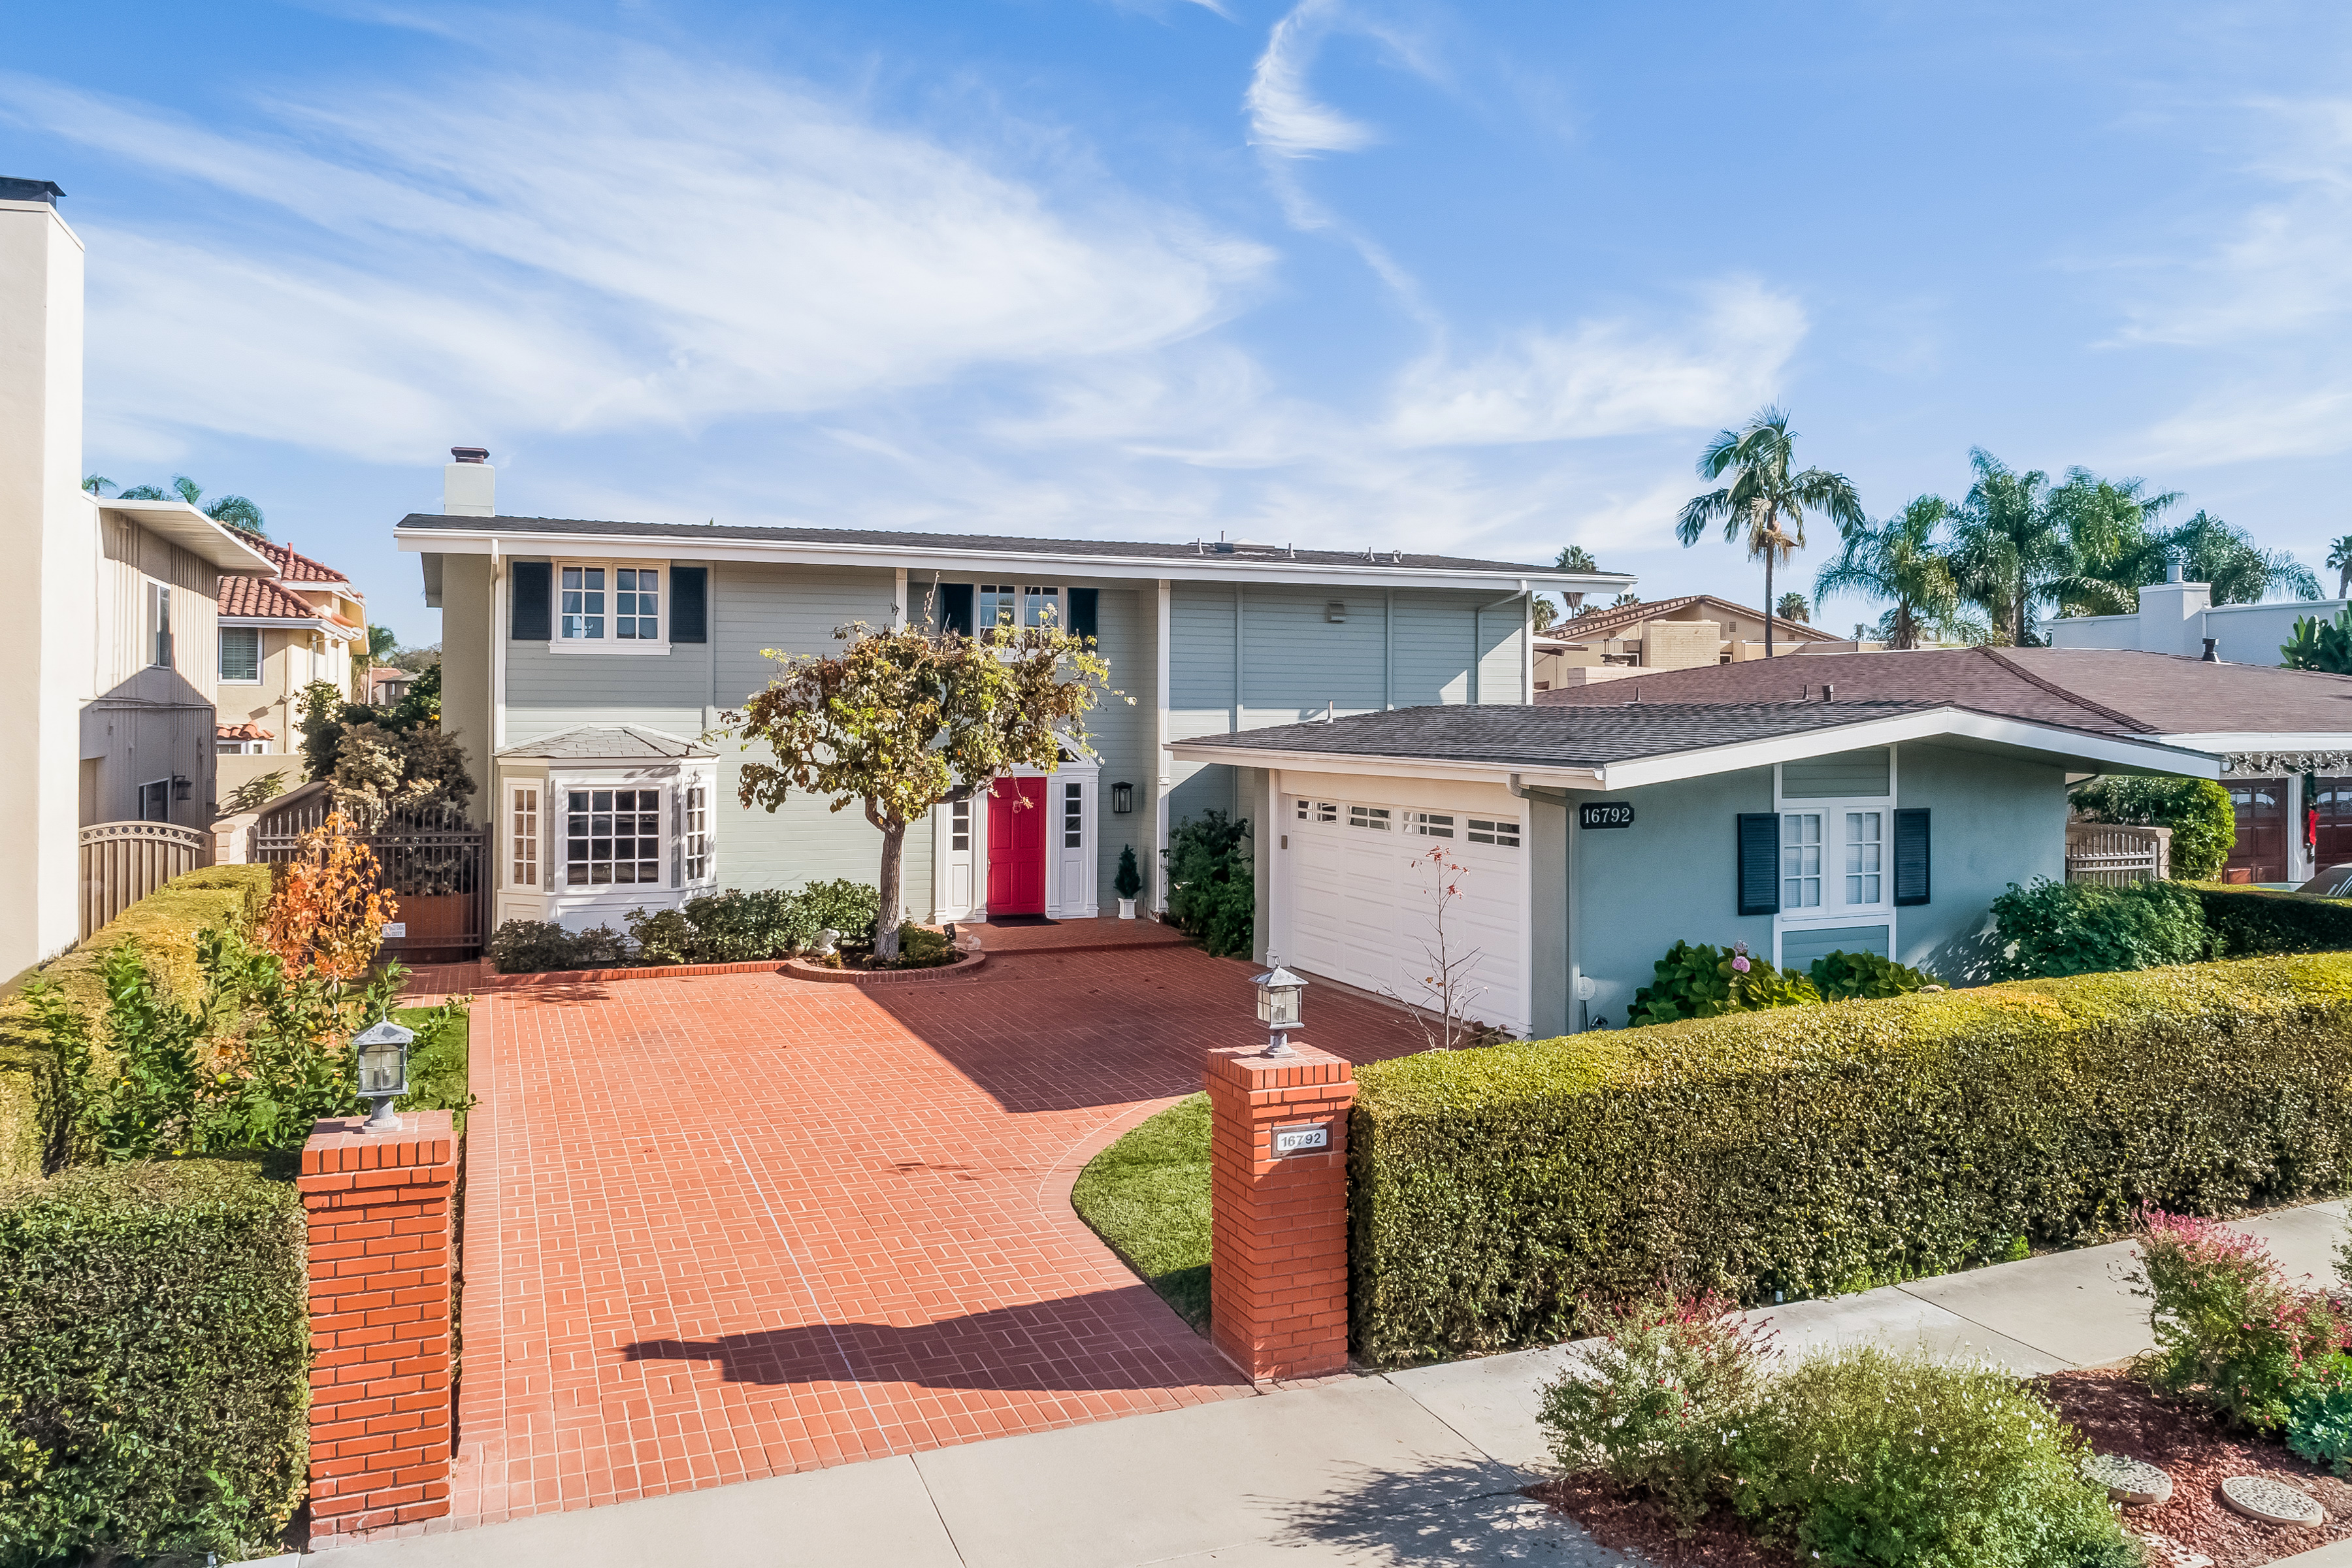 Single Family Home for Sale at 16792 Edgewater Lane 16792 Edgewater Lane Huntington Beach, California,92649 United States